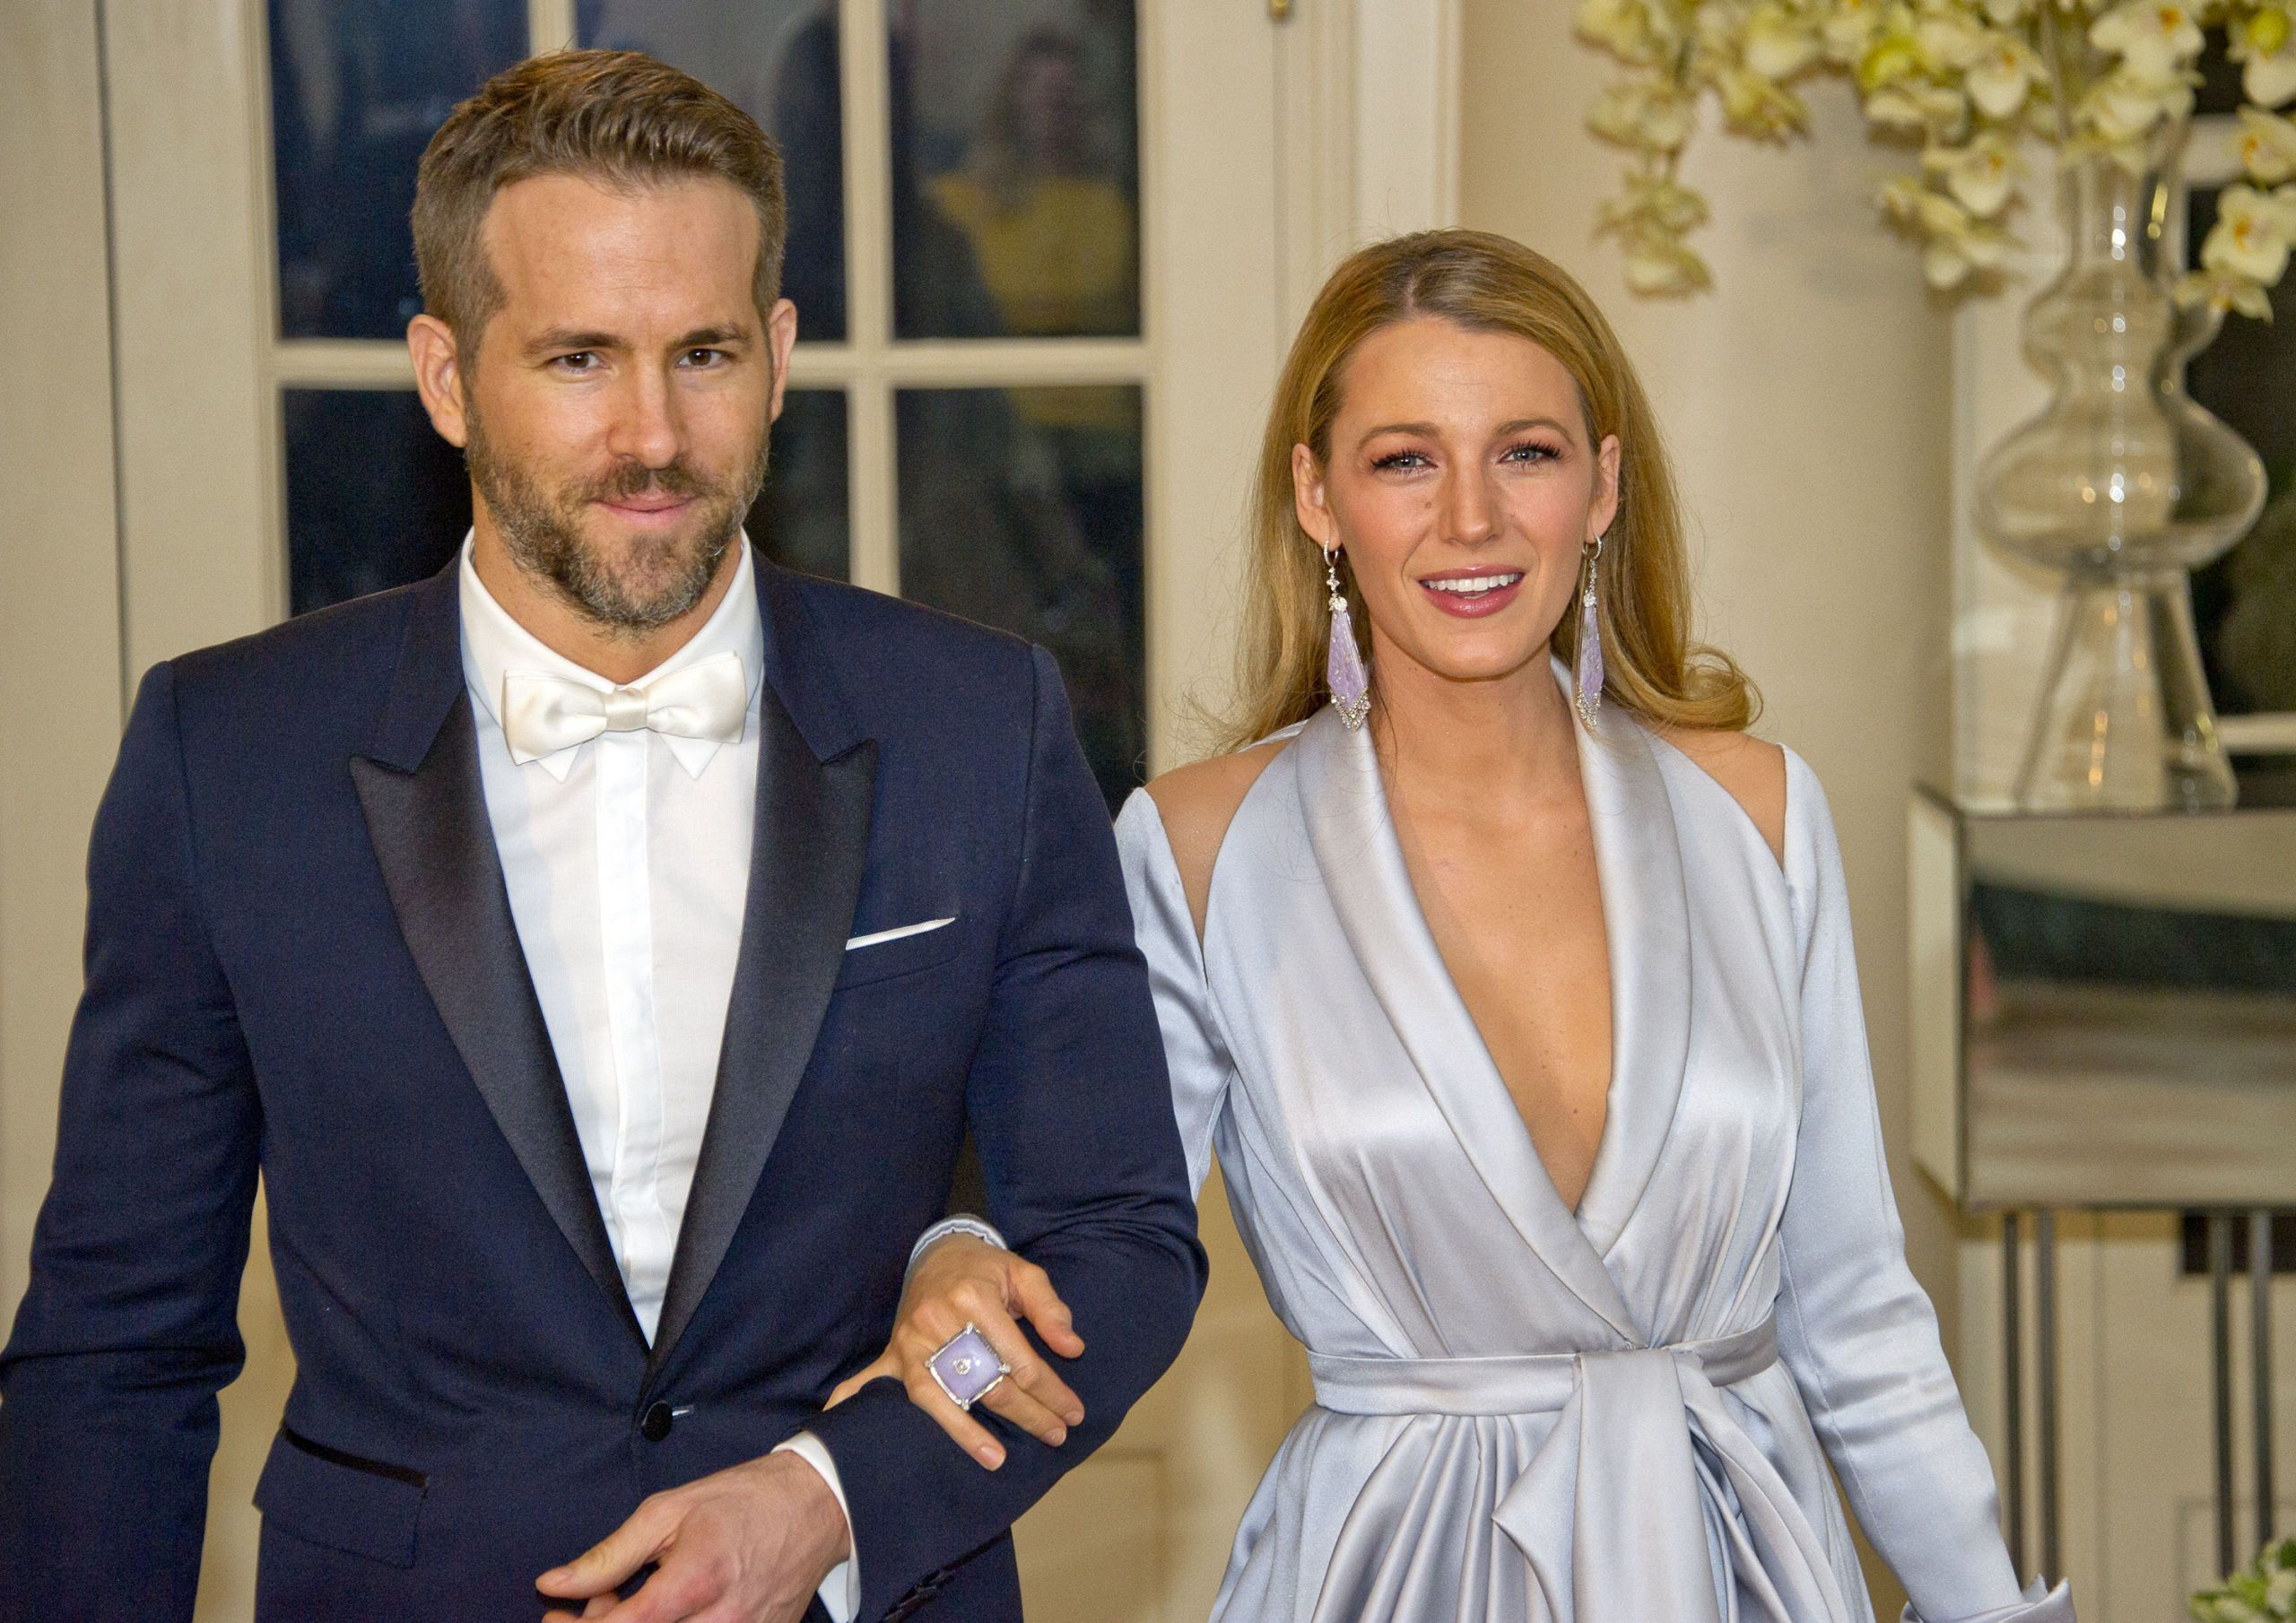 Guy dating blake lively